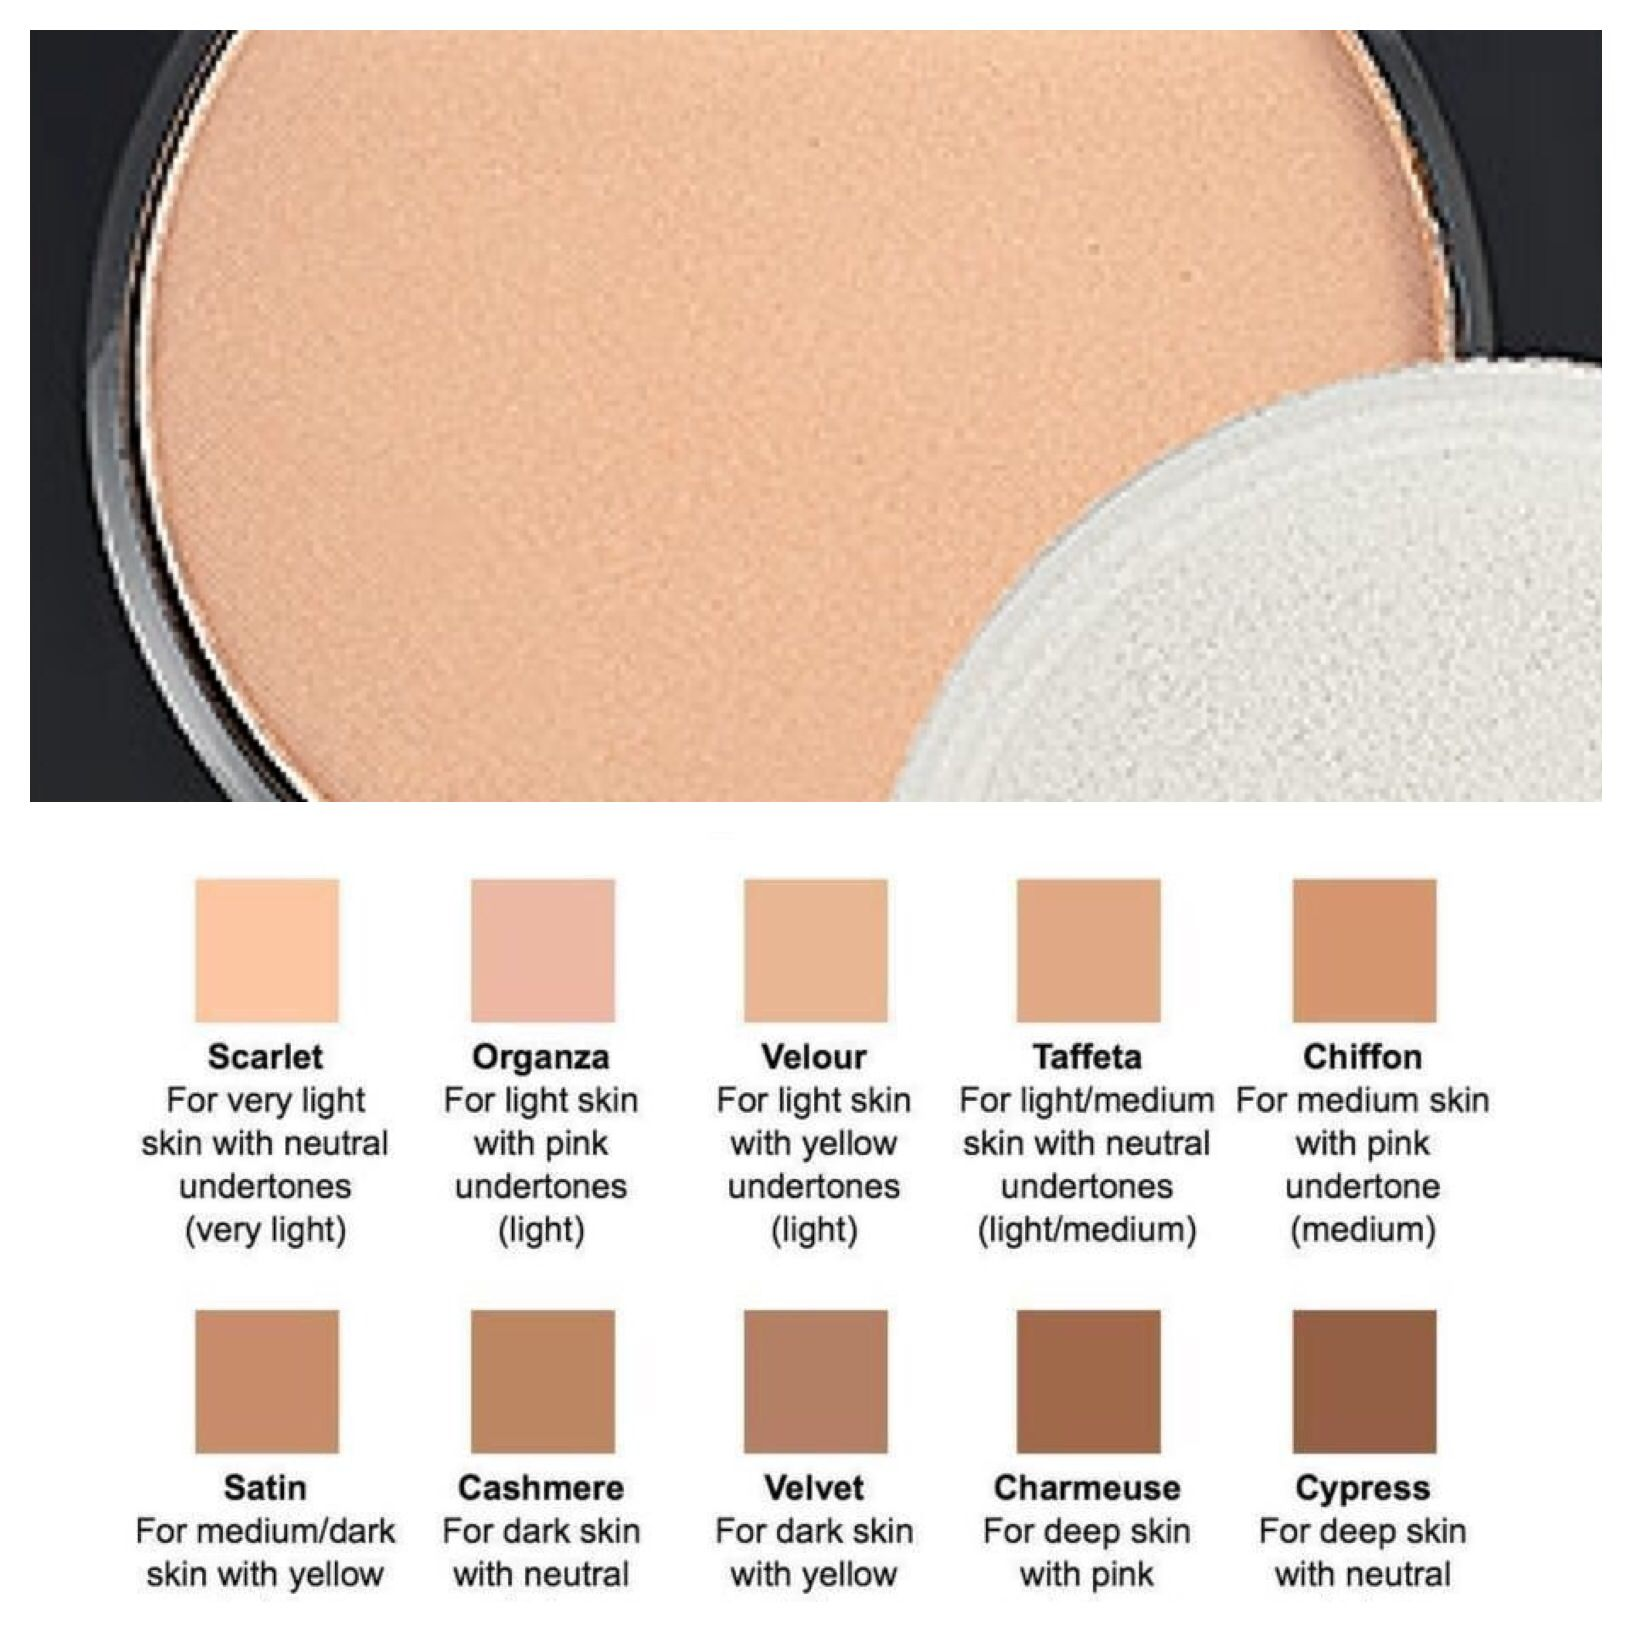 Nyx Stay Matte But Not Flat Powder Foundation Shade Finder Need Help Matching Your Current Foundation With A Younique Foundation Color Message Me A Picture And I Ll Help You Pick Our Pressed Powde Younique